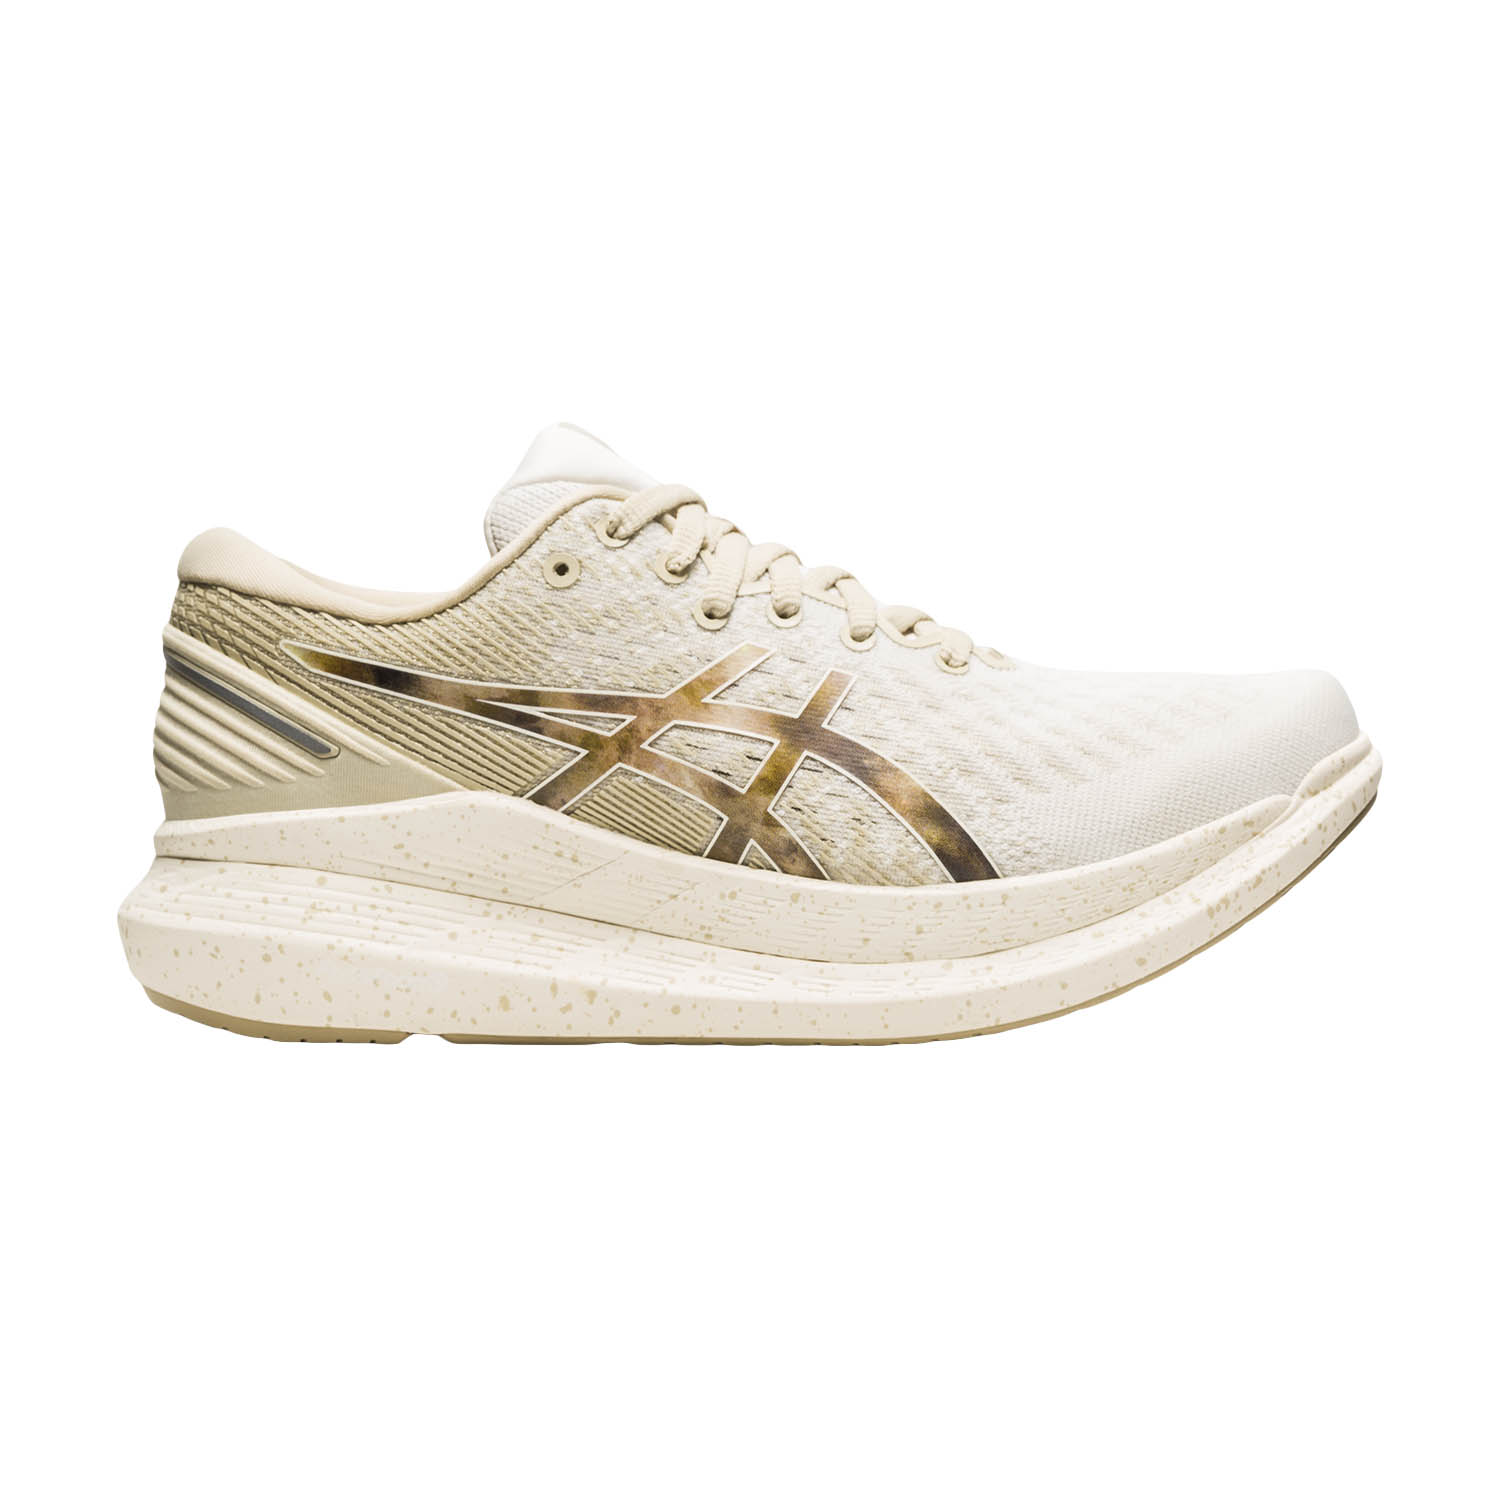 Asics Glideride 2 - Earth Day/Cream Putty